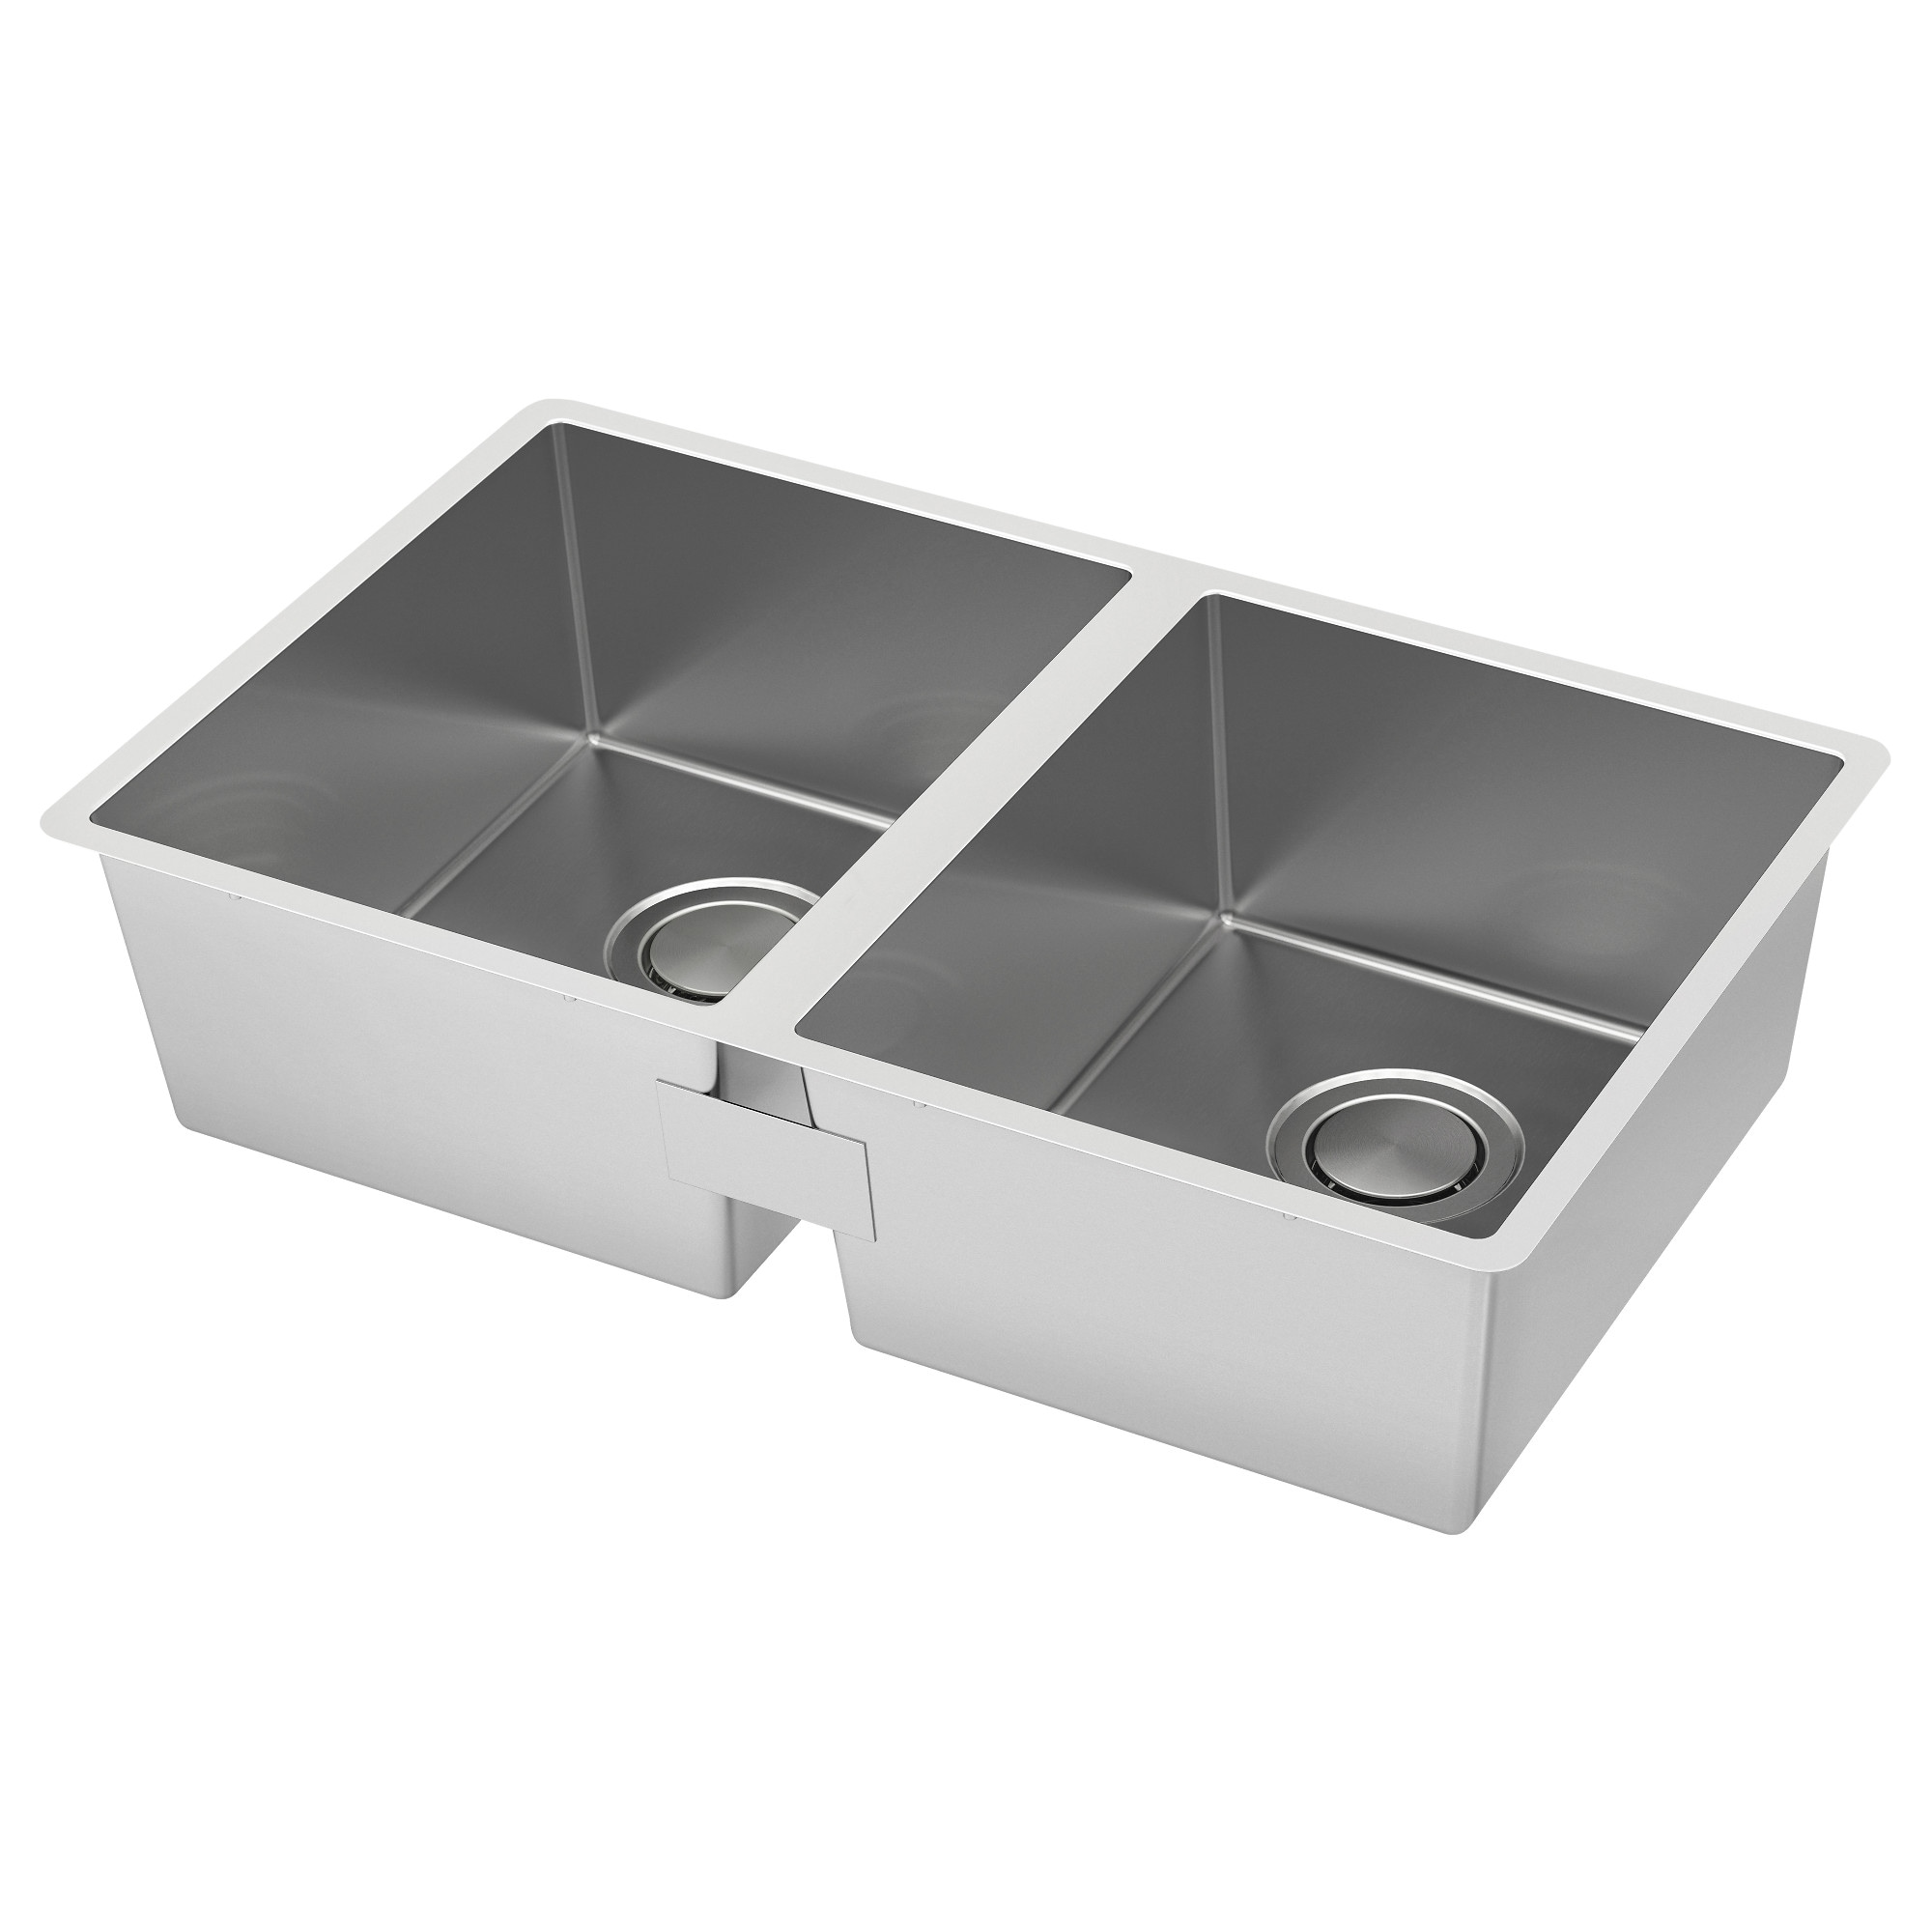 NORRSJÖN Double Bowl Top Mount Sink, Stainless Steel Cut Out Measurement  Width: 16